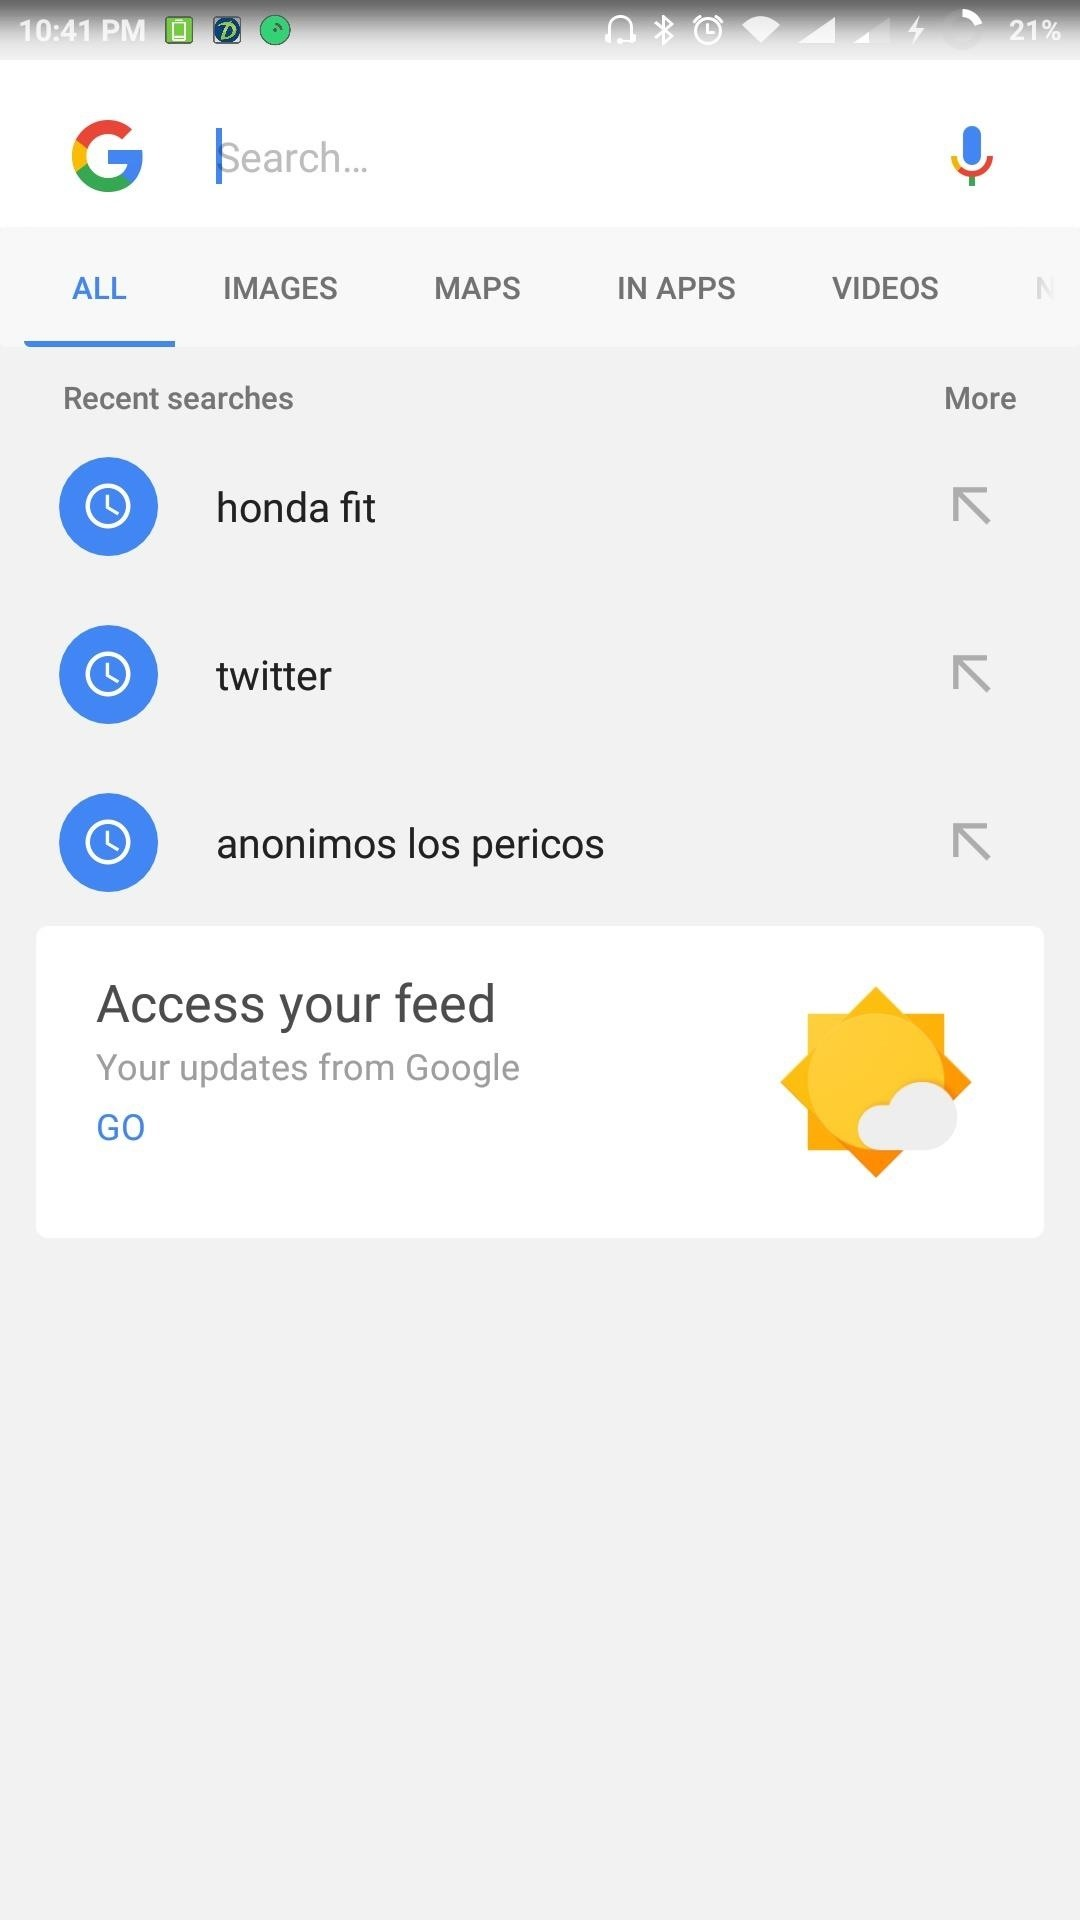 Google Assistant Updates Add Screen Search Button & Tweaks the Search Interface